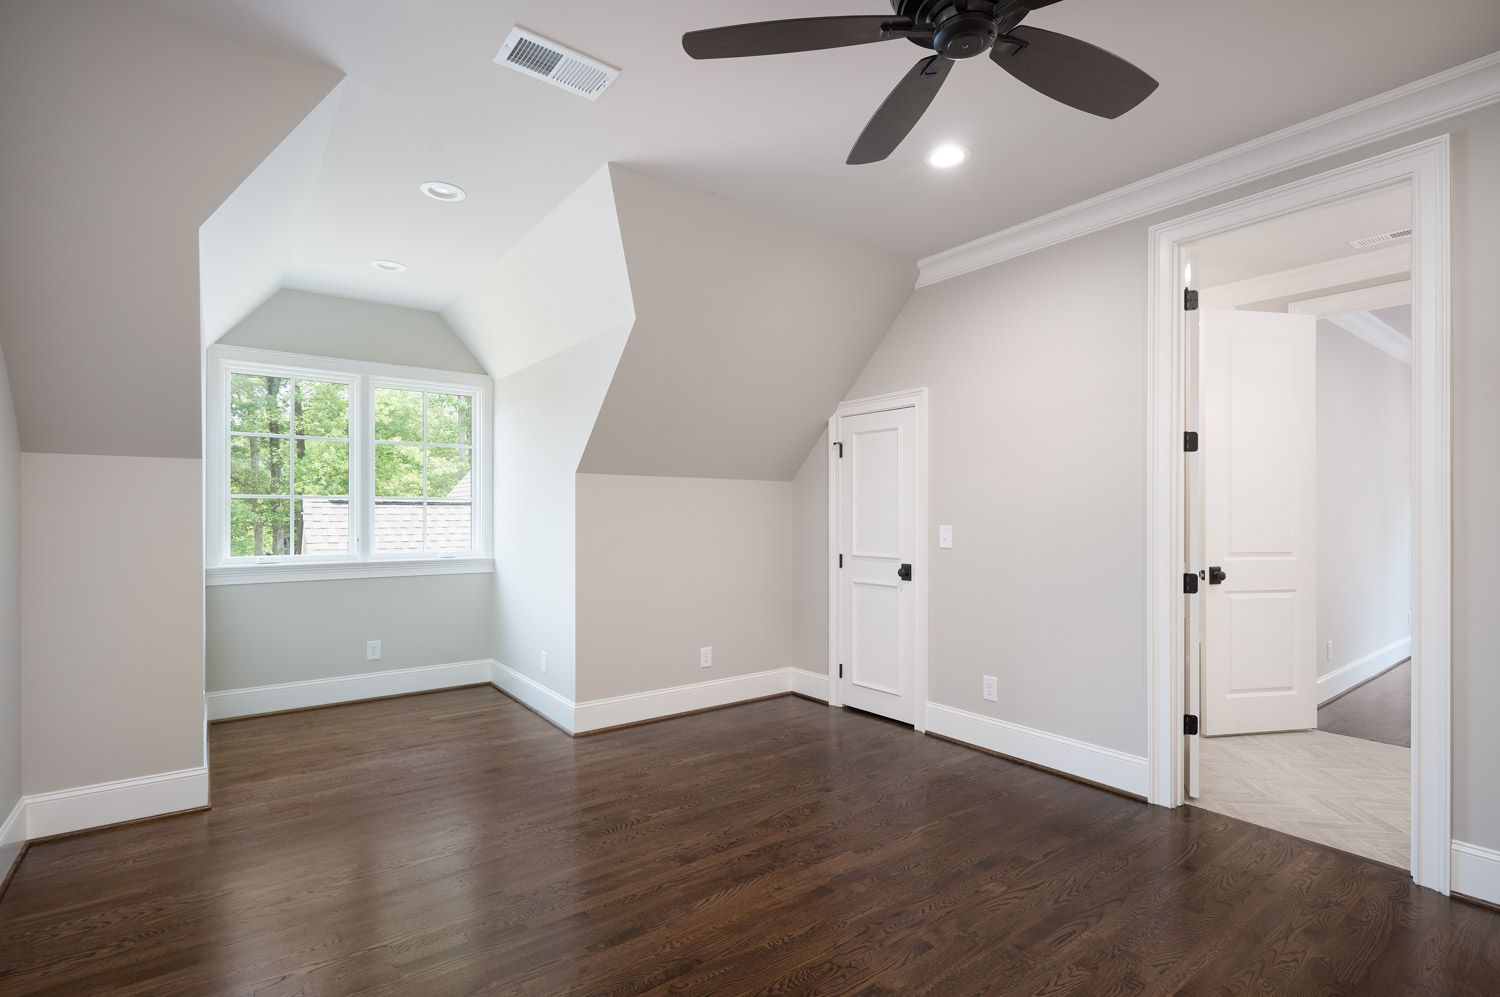 Pin By Katie Copp On For The Home In 2020 Grey Walls White Trim